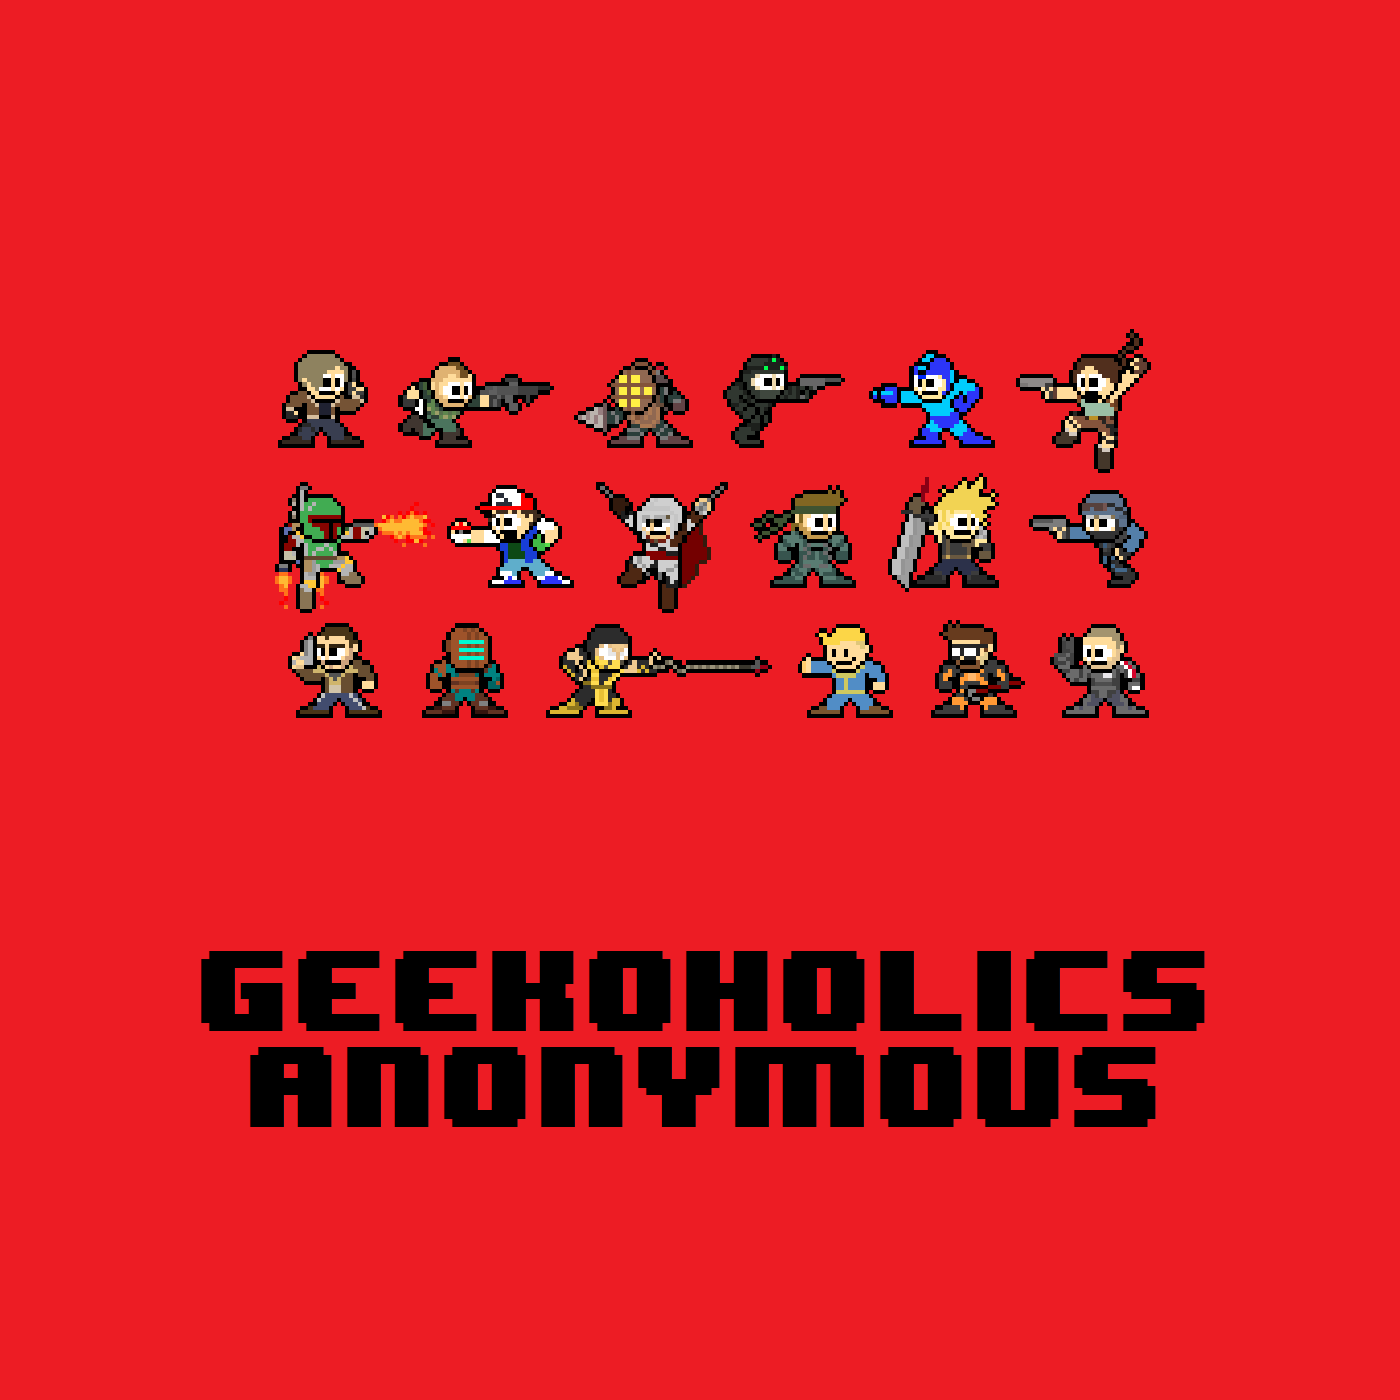 Steam Deck, State of Play, Black Widow and more - Geekoholics Anonymous Podcast 314 show art